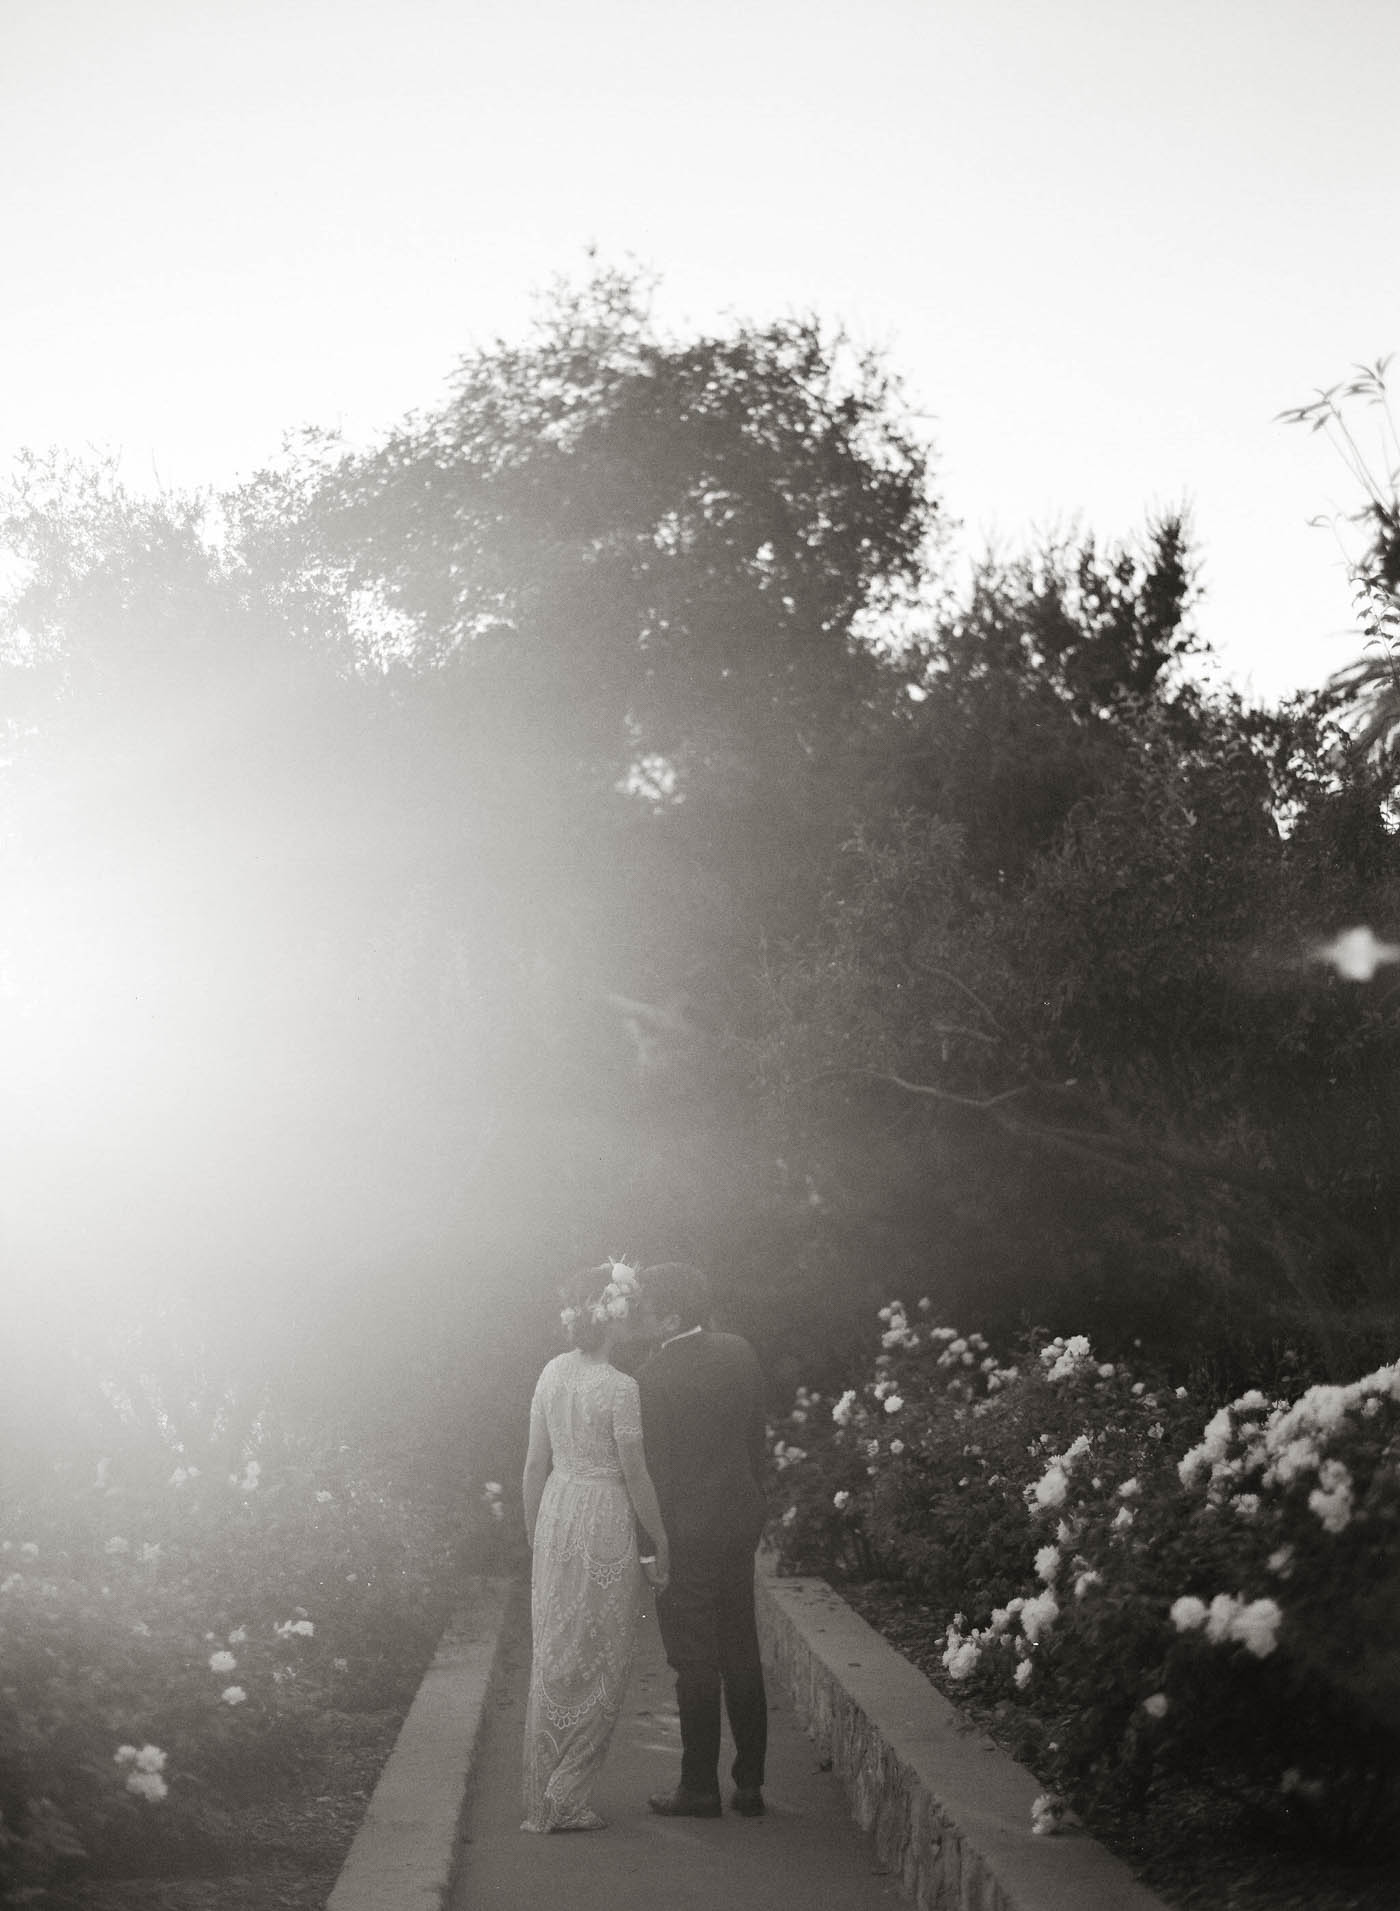 san-ysidro-ranch-garden-wedding-jen-huang-14.jpg